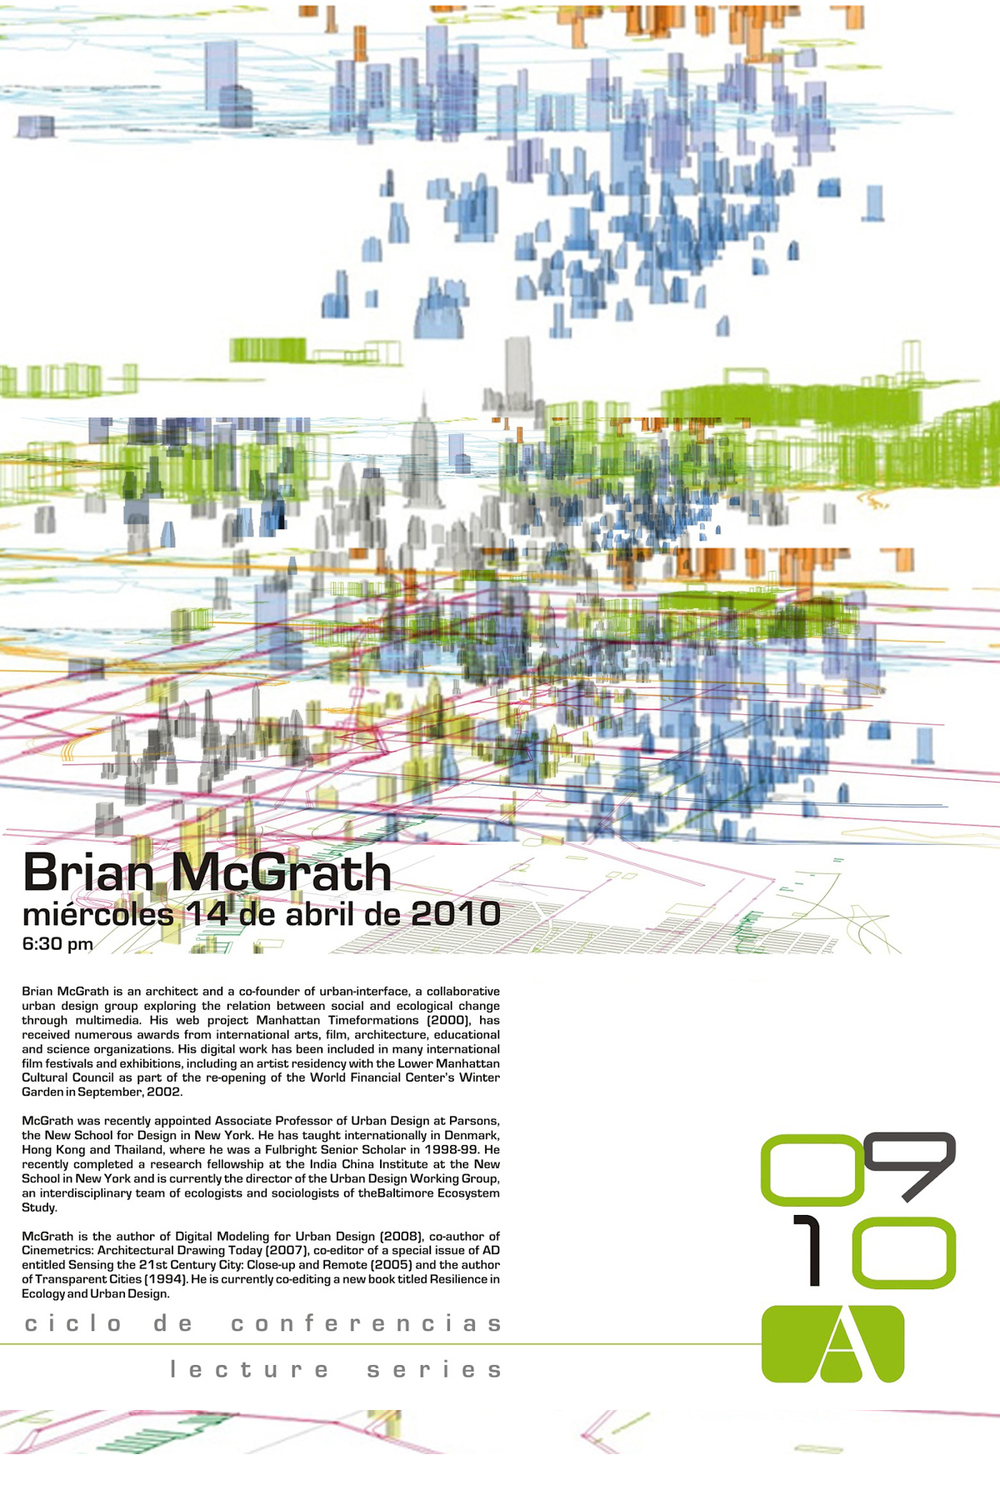 mcgrath postcard22A.jpg